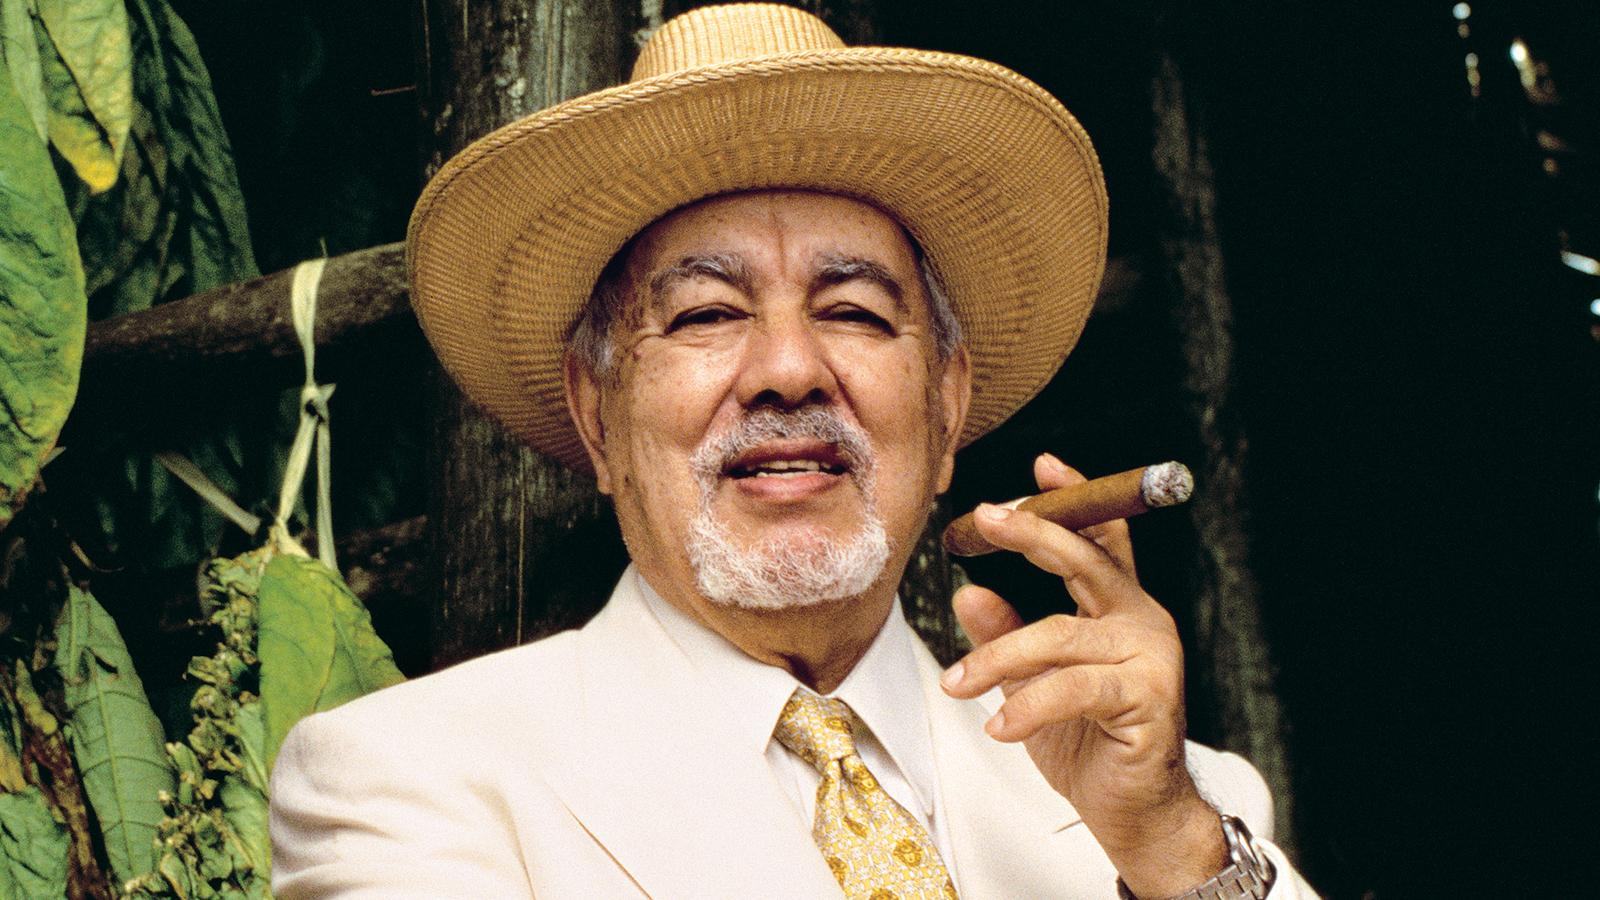 Avo Uvezian, in his prime, photographed in the Dominican Republic in 1997.